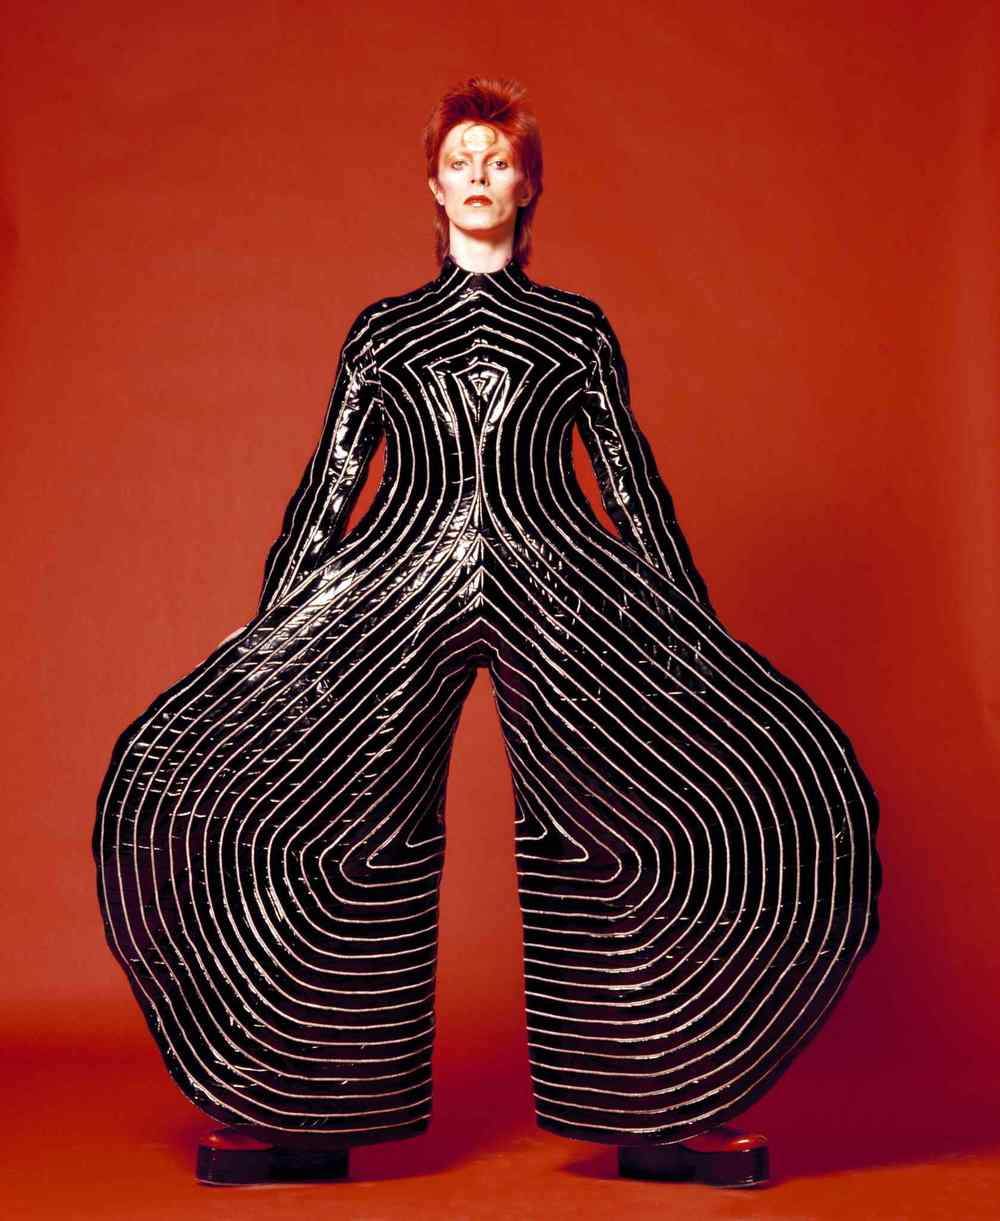 Striped bodysuit for Aladdin Sane tour, 1973 | Design by Kansai Yamamoto | Photograph by Masayoshi Sukita | © Sukita / The David Bowie Archive 2012